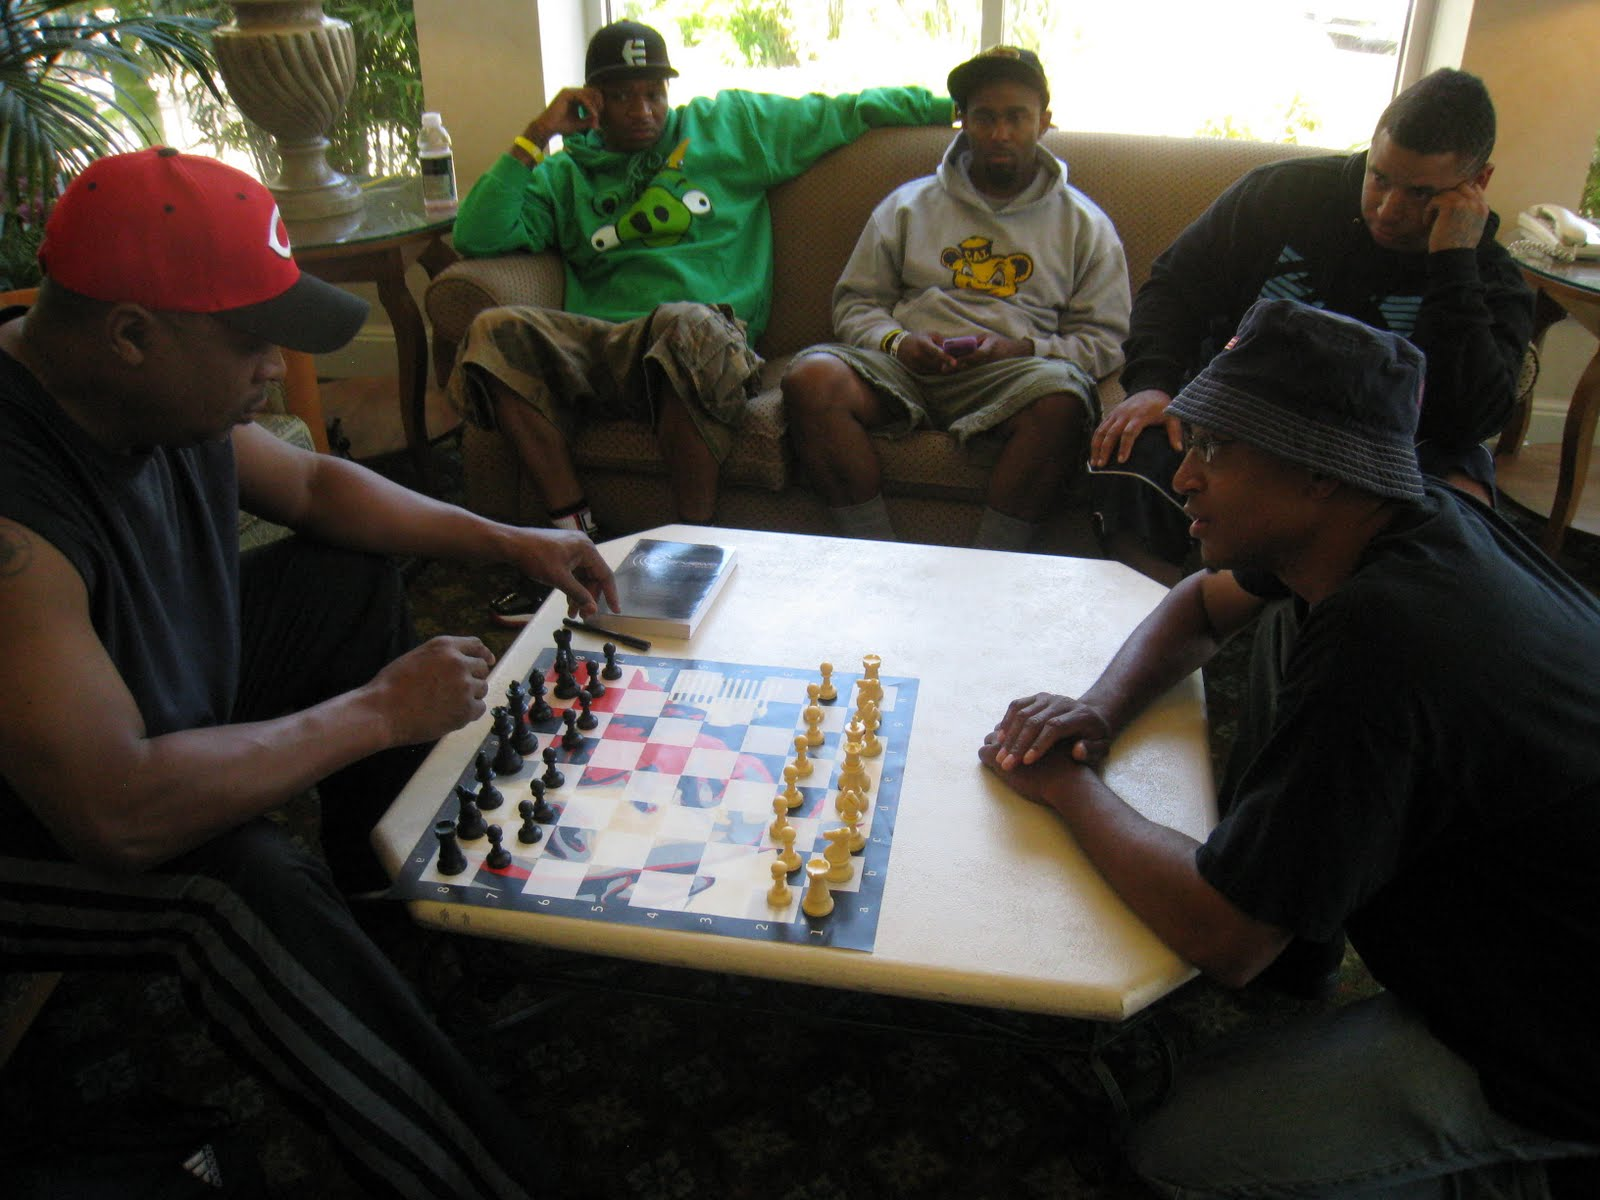 Chuck D of Public Enemy and Adisa play a game on a Barack Obama board...